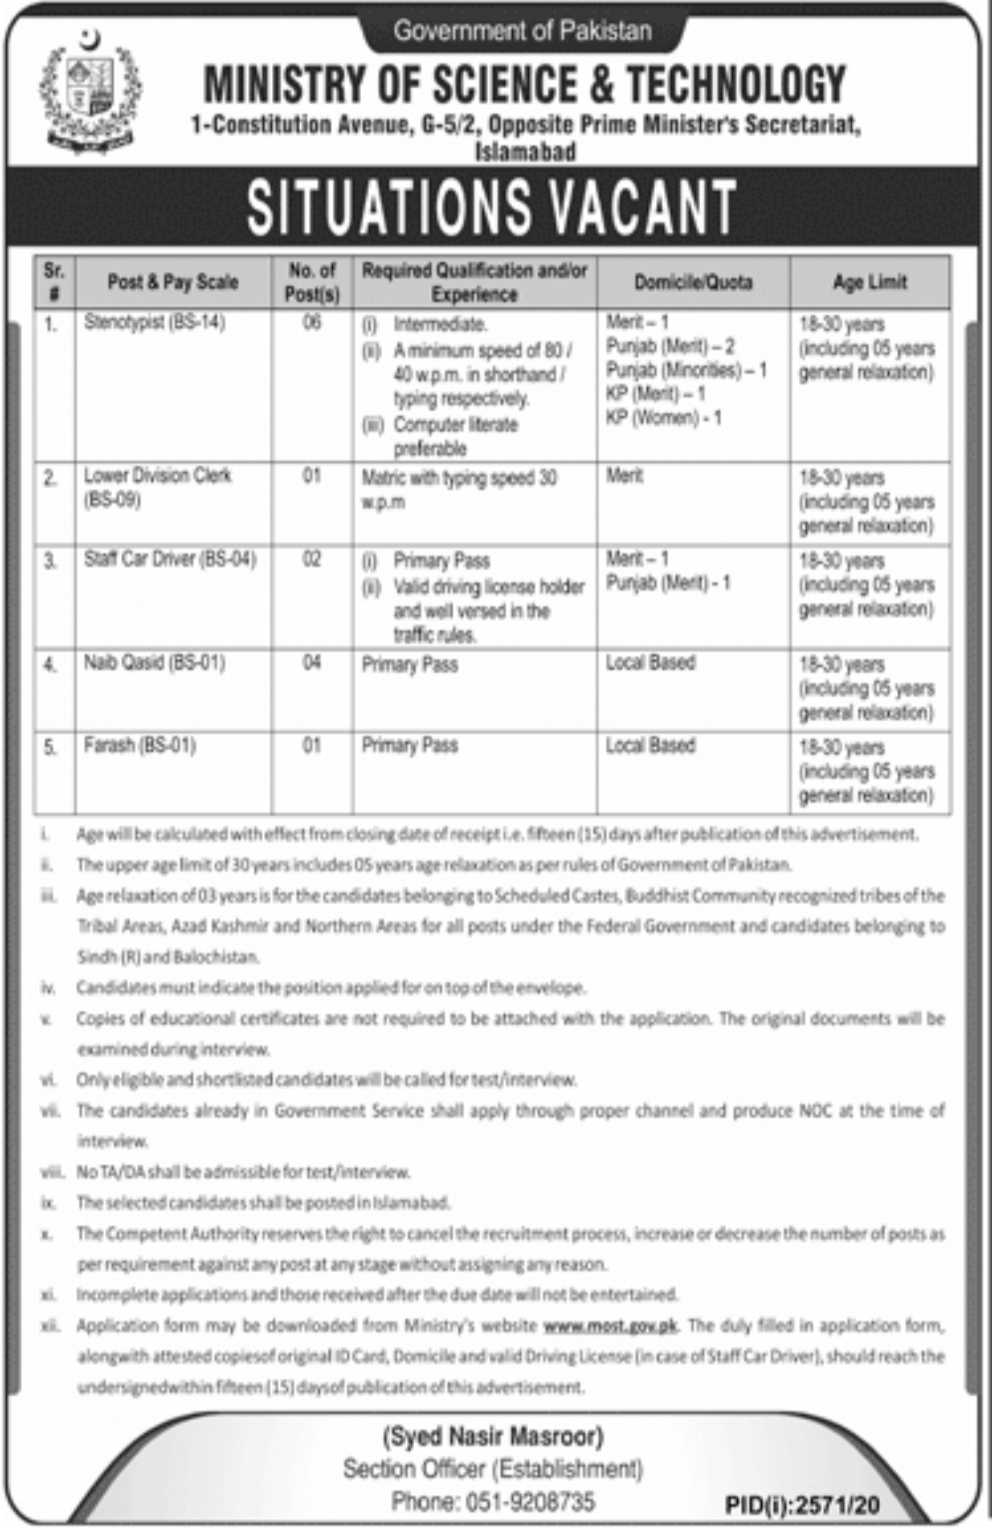 Government of Pakistan, Ministry of Science & Technology Jobs 2020